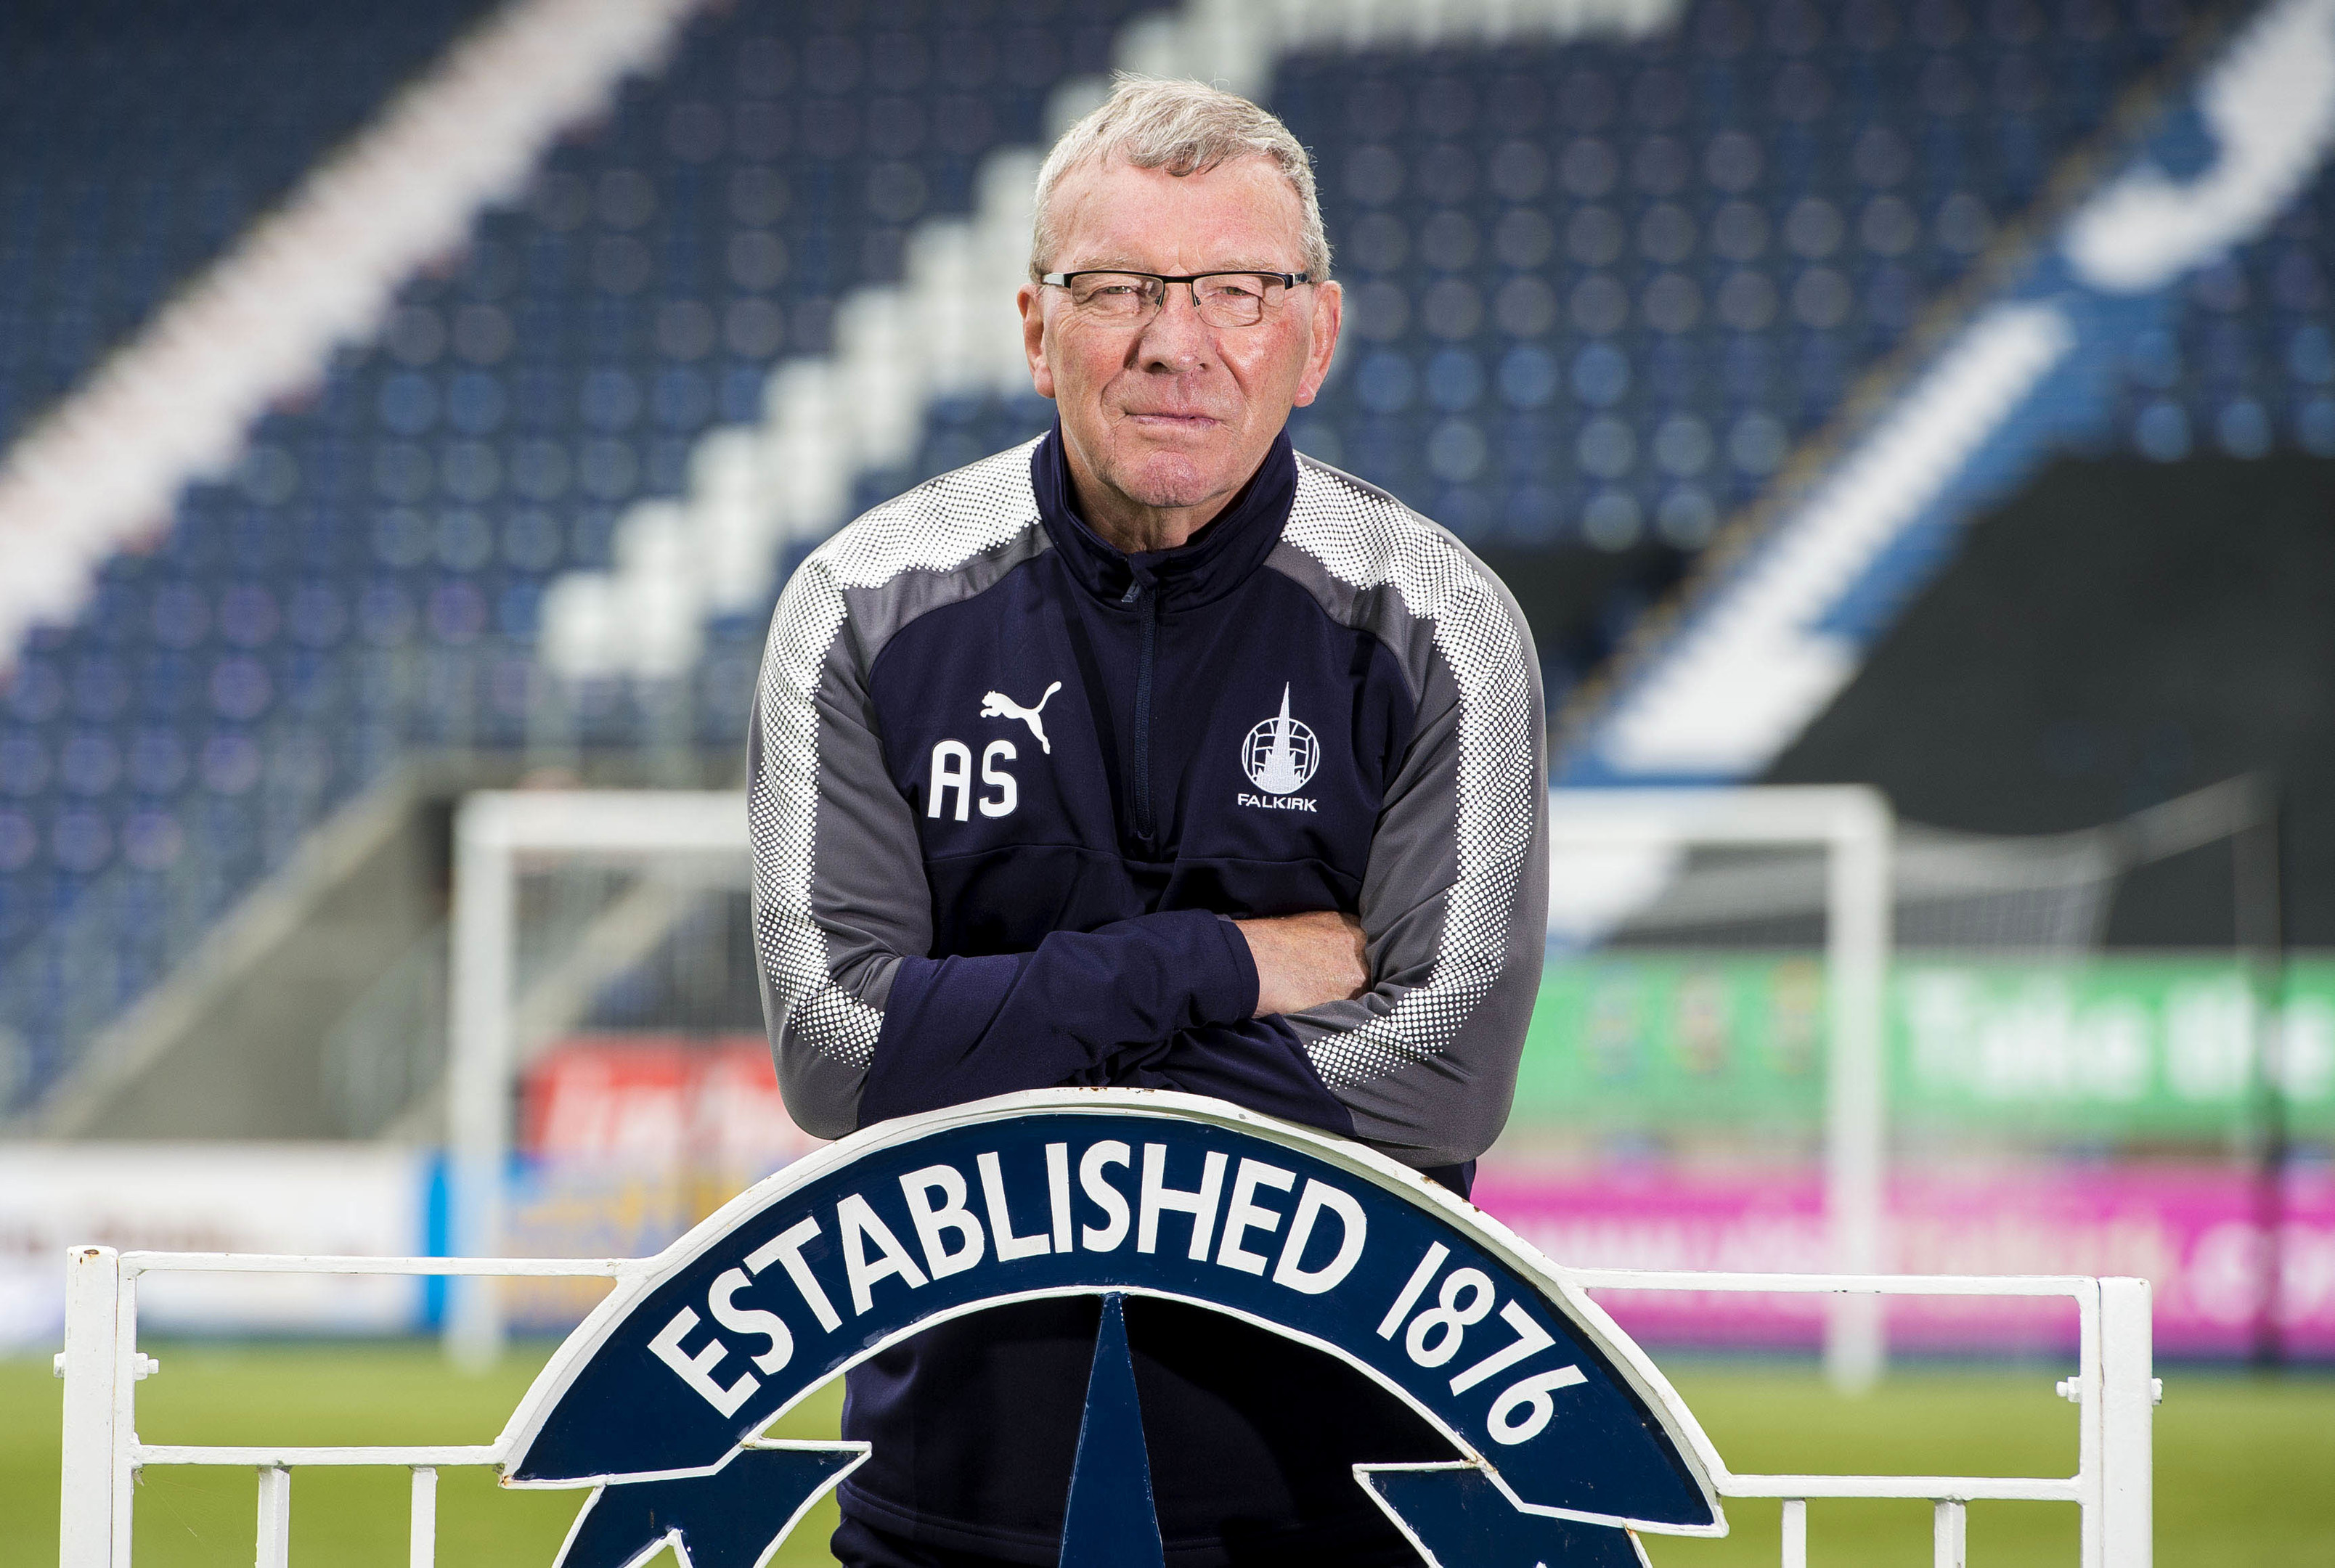 Scottish football legend Alex Smith to retire at the end of